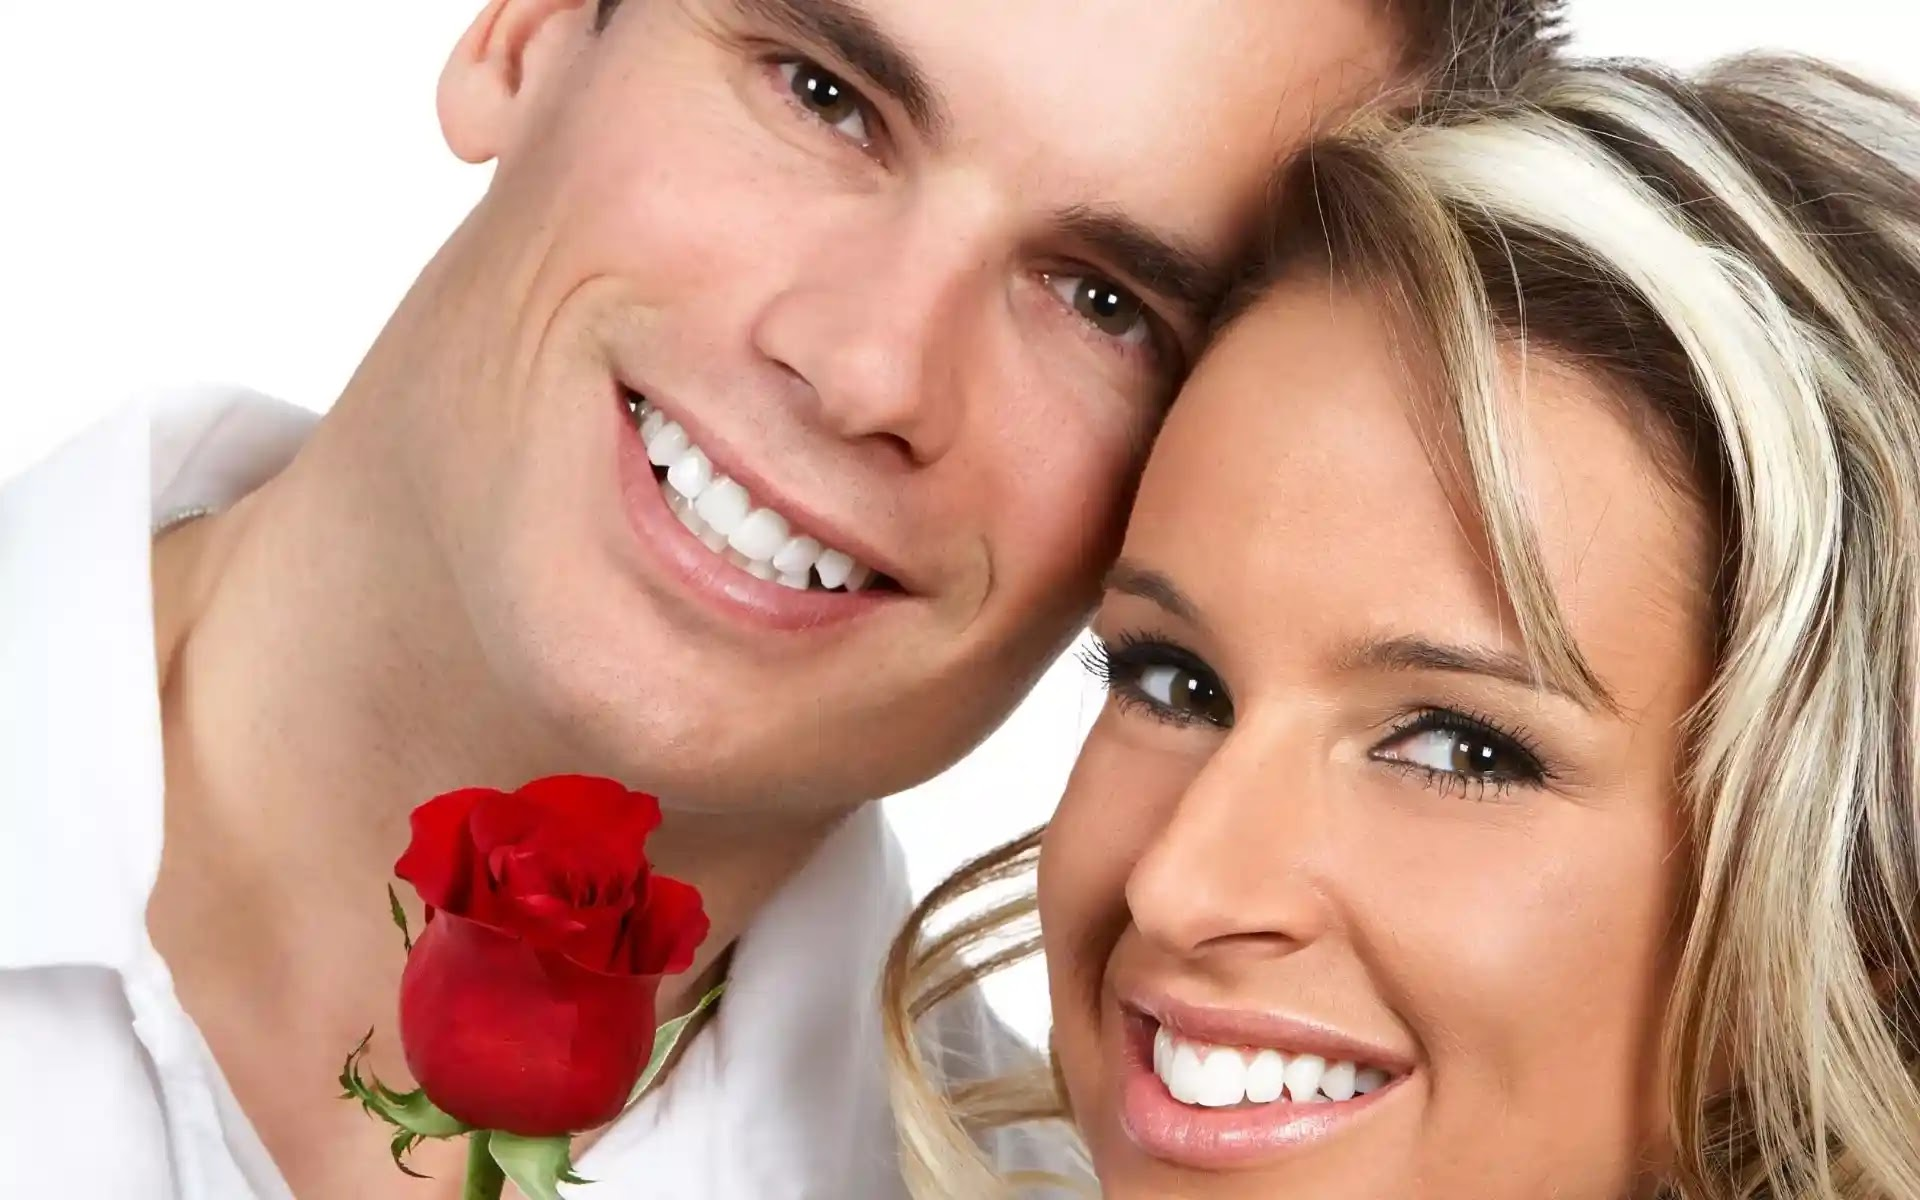 couple with rose image